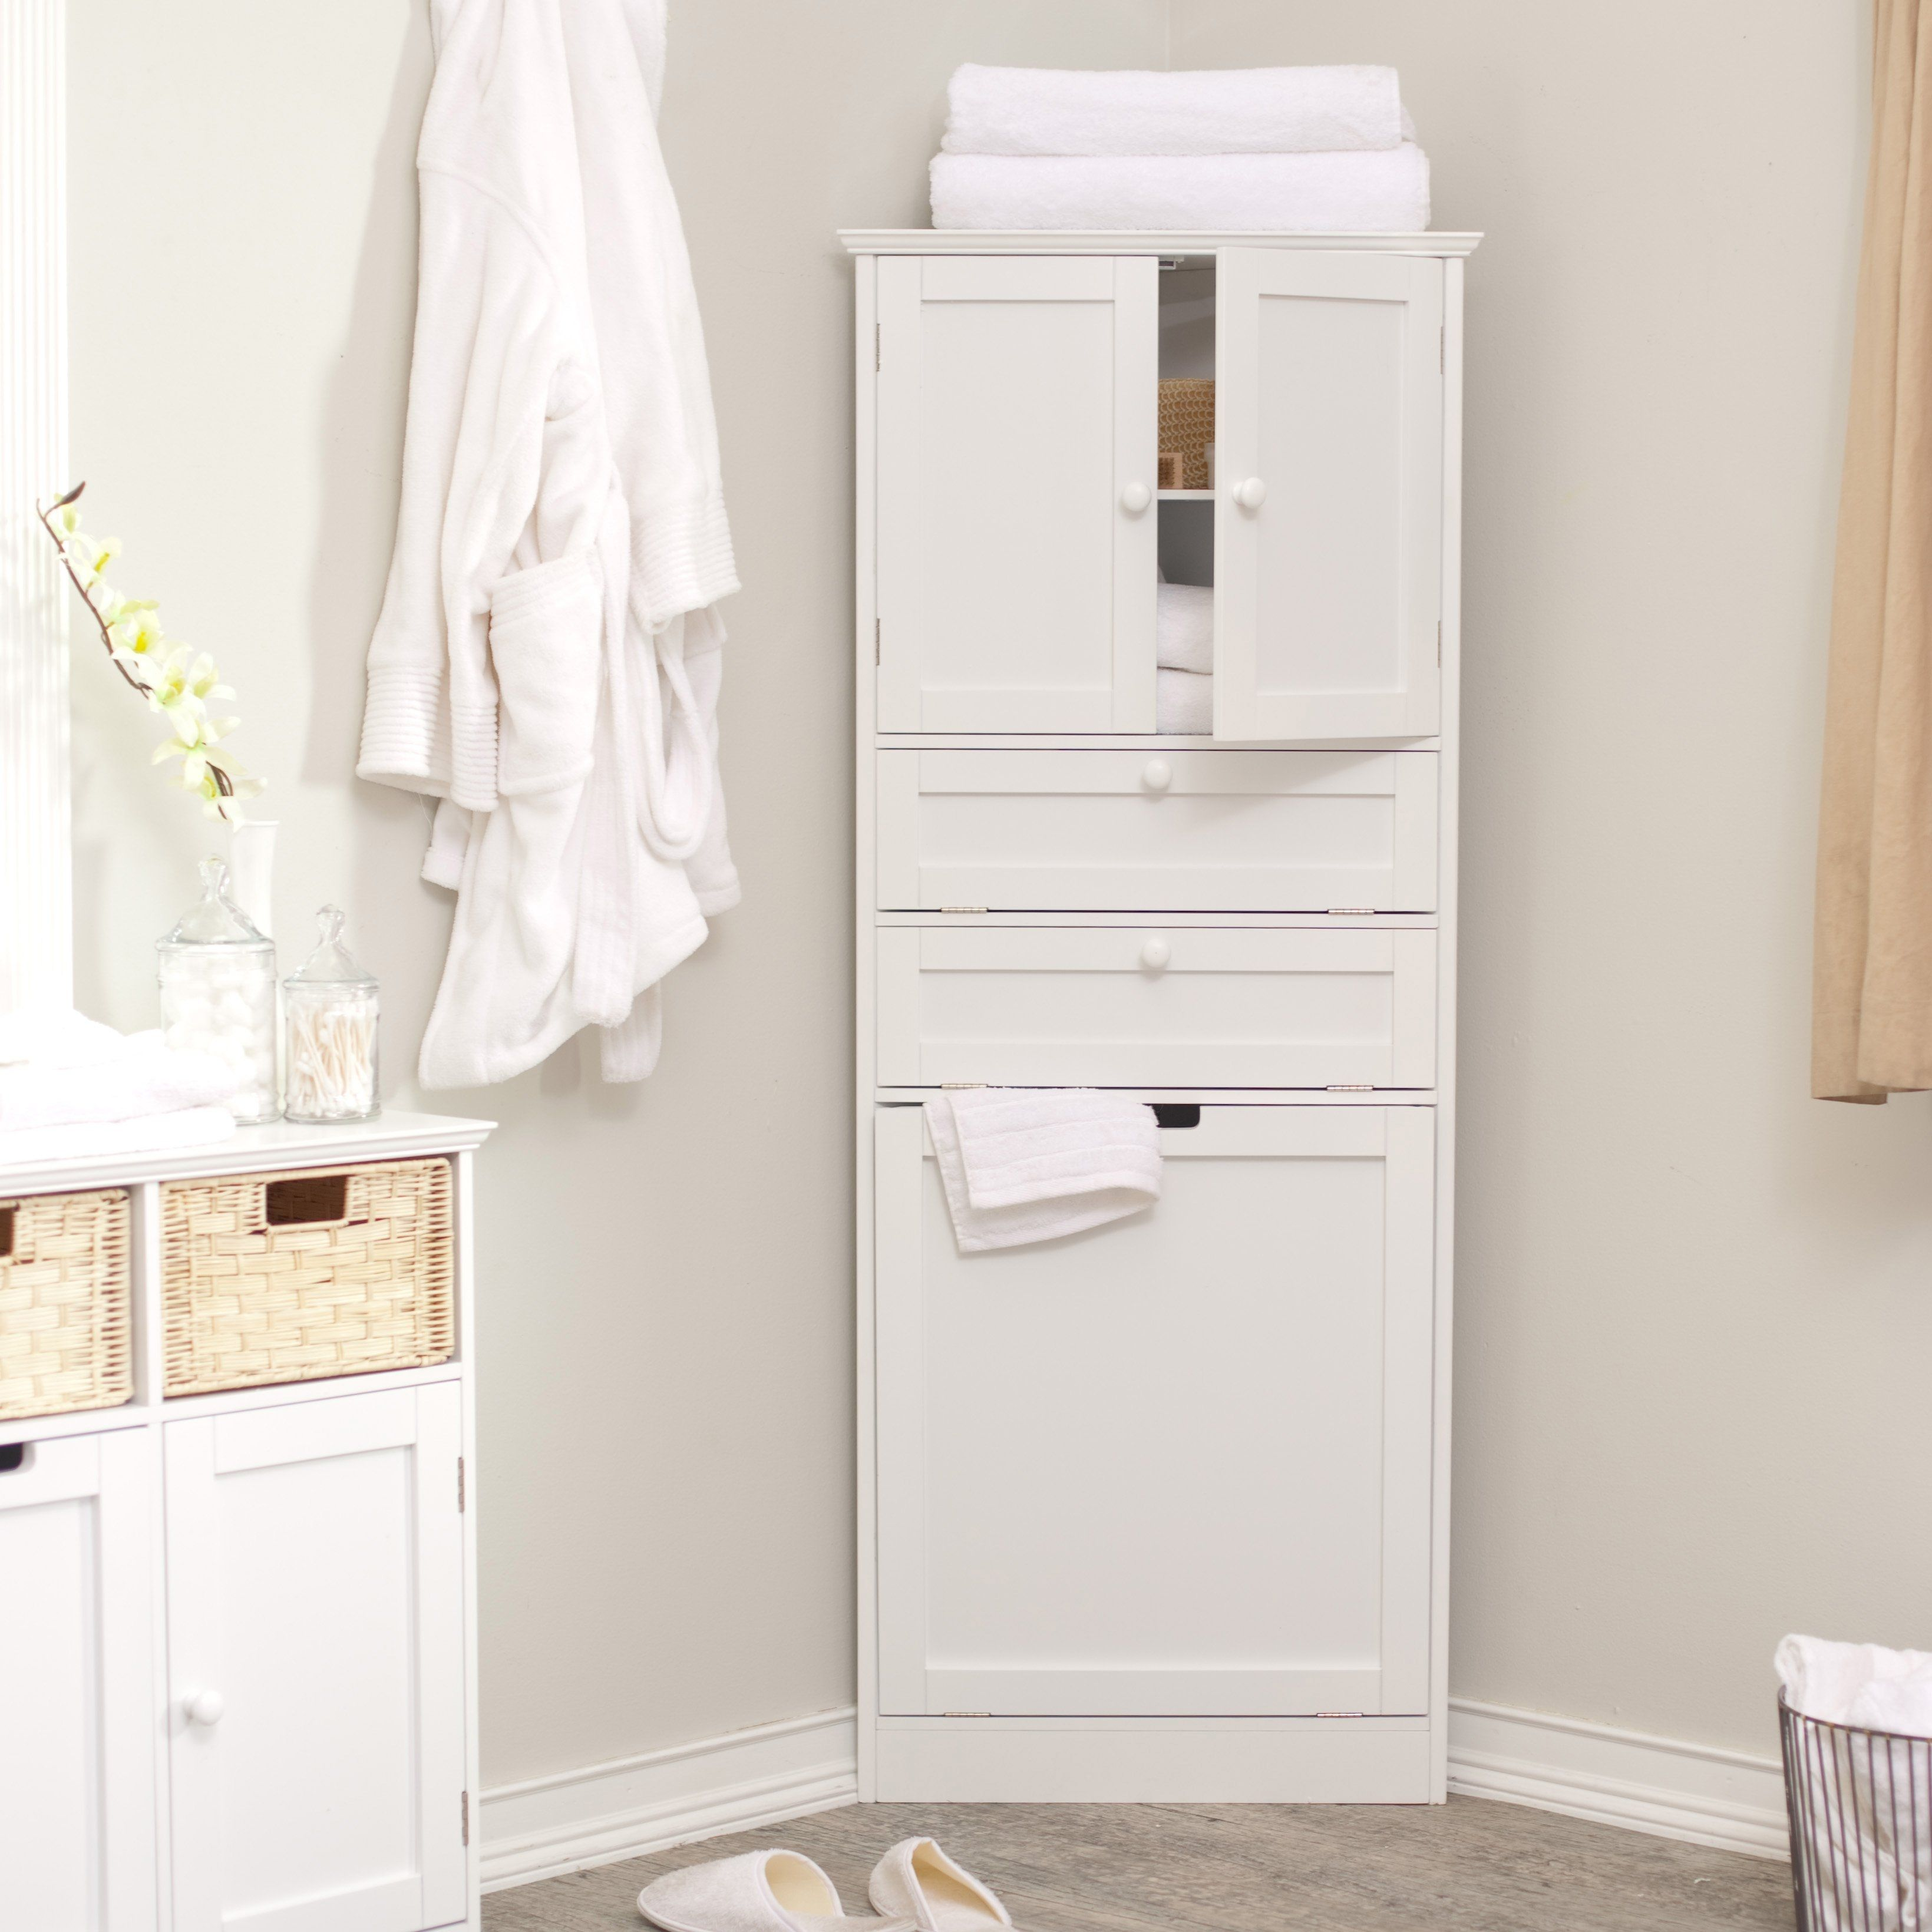 Small Corner Bathroom Bathroom Corner Storage Cabinet Bathroom